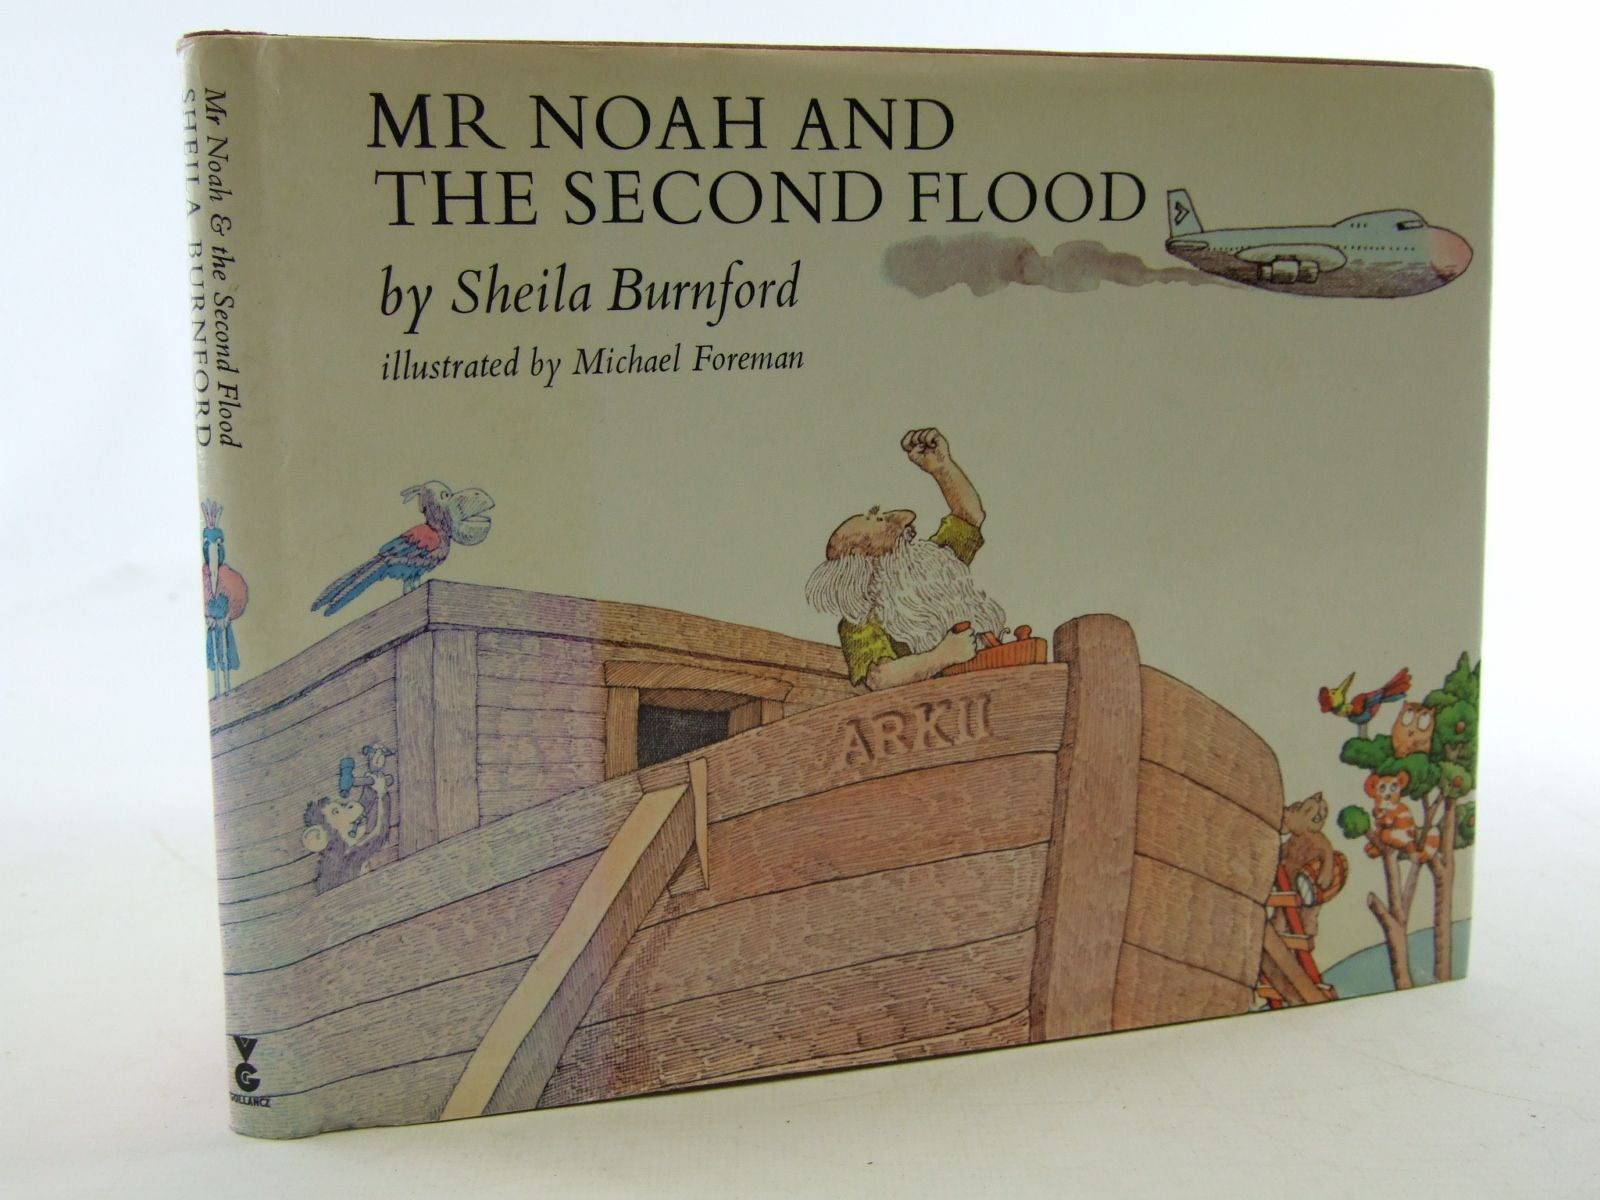 Photo of MR NOAH AND THE SECOND FLOOD written by Burnford, Sheila illustrated by Foreman, Michael published by Victor Gollancz Ltd. (STOCK CODE: 2108969)  for sale by Stella & Rose's Books